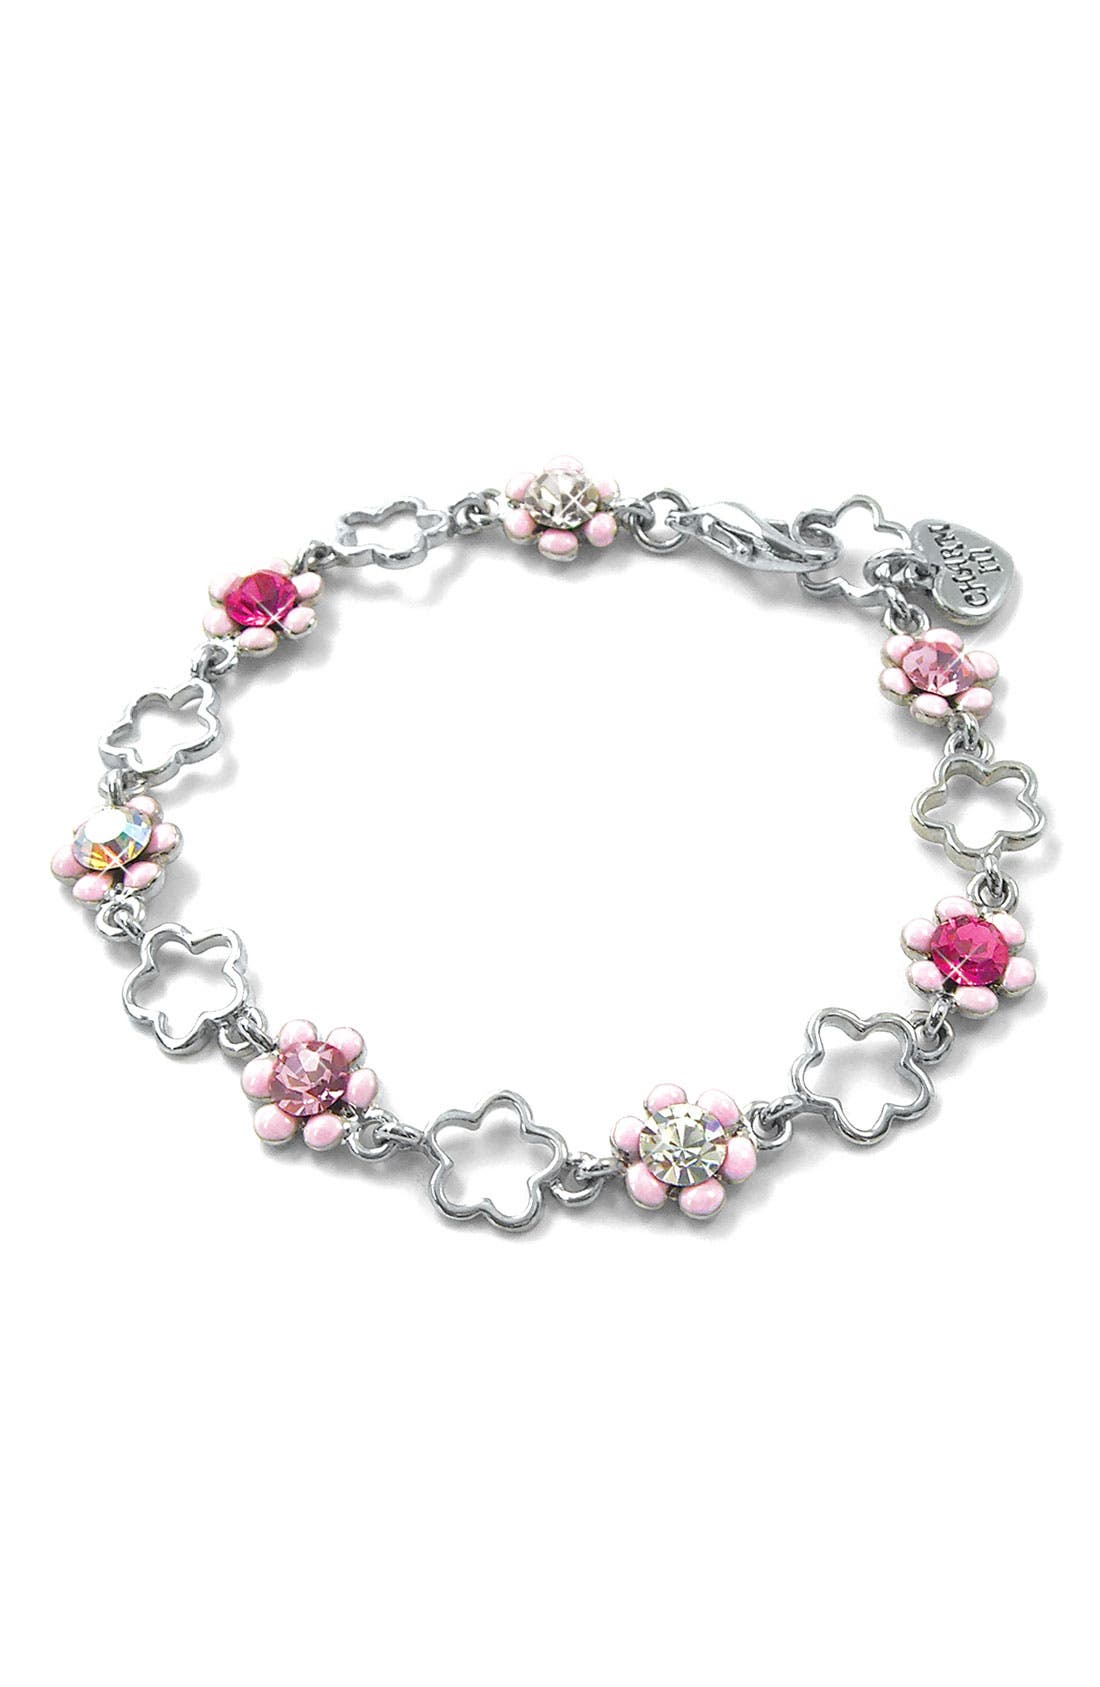 Main Image - CHARM IT!® Flower Charm Bracelet (Girls)